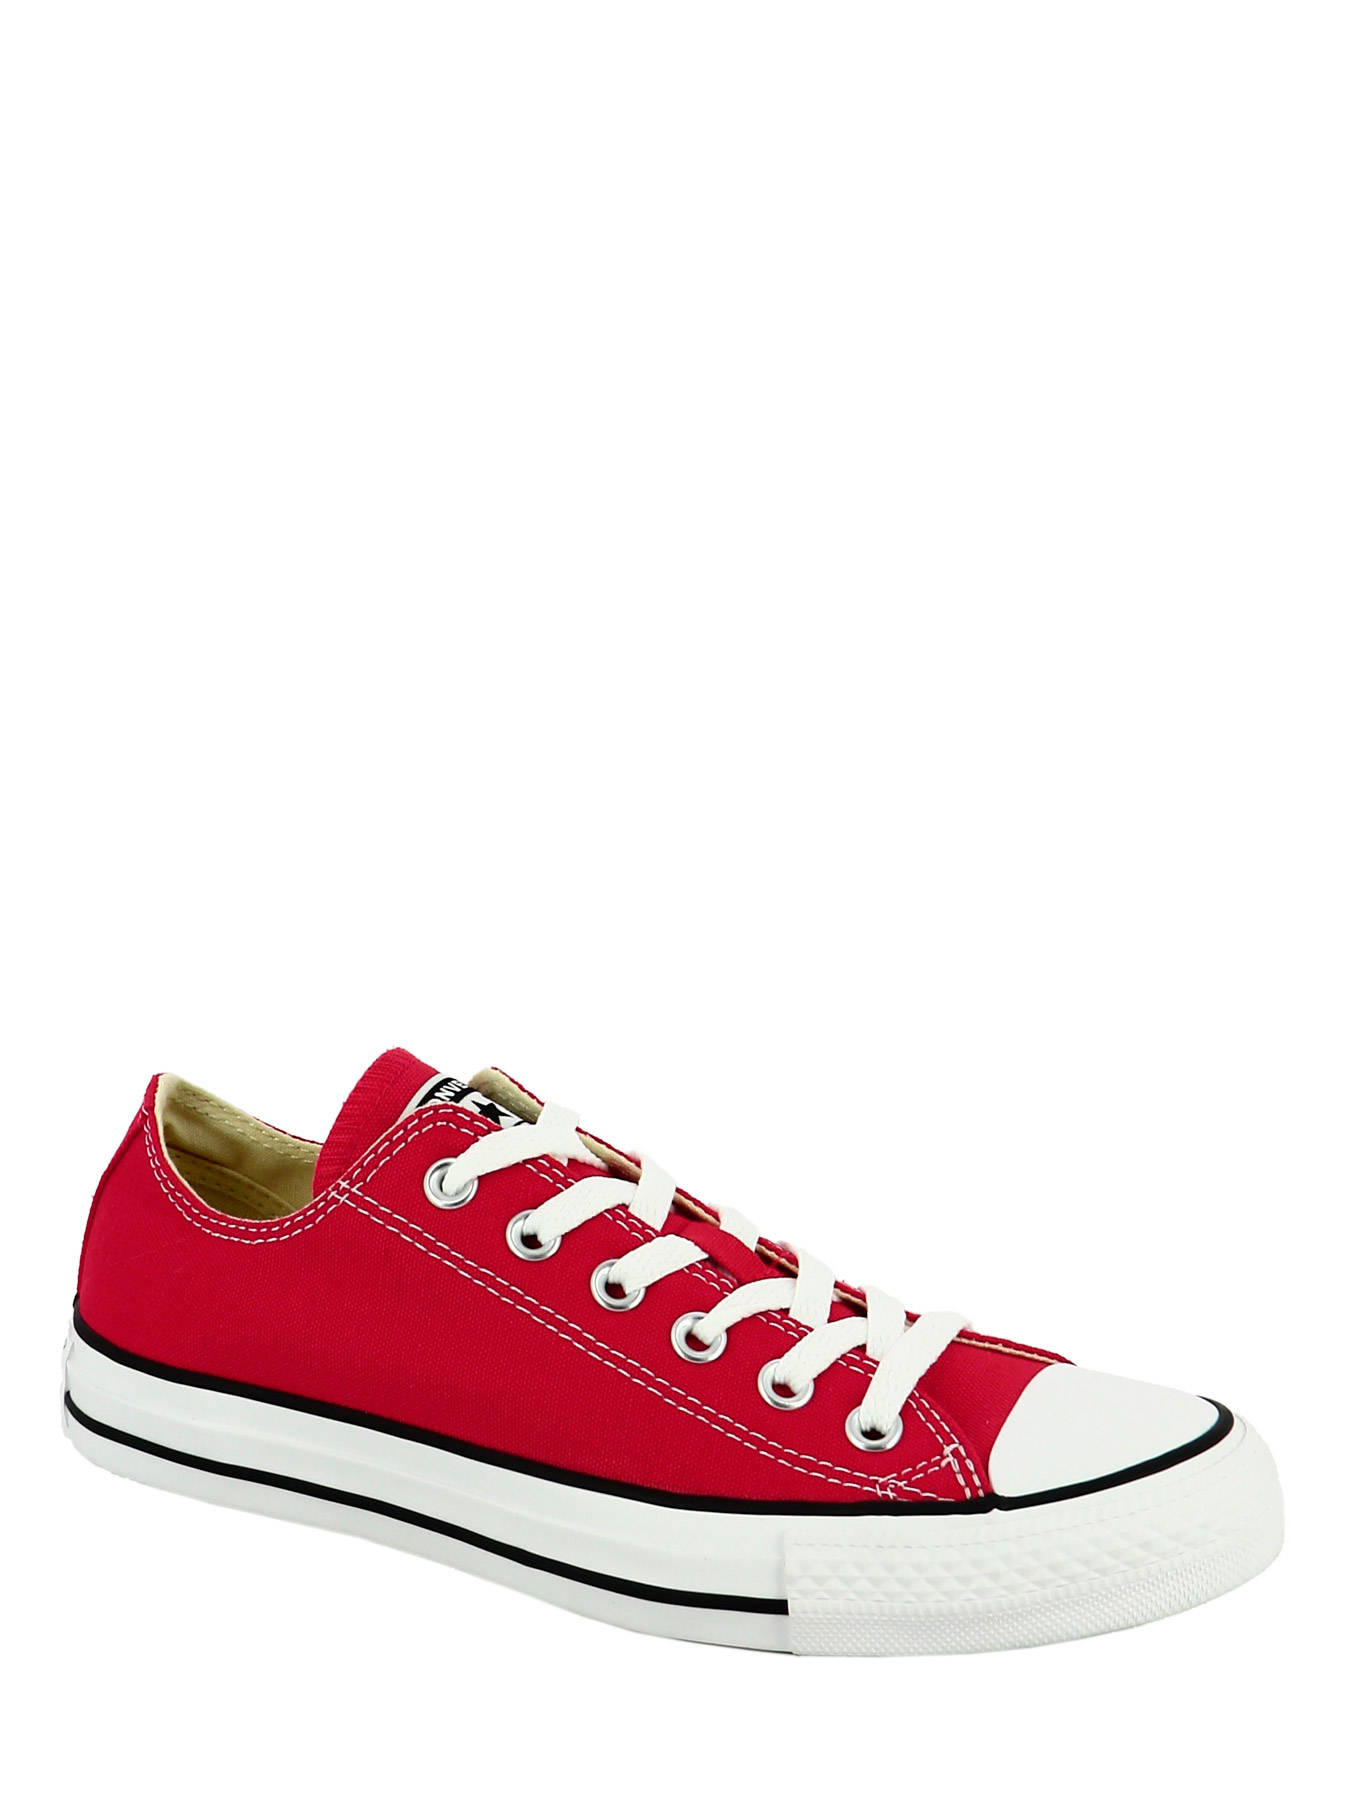 1a117c641d5 Converse Sneakers CTAS OX RED - best prices